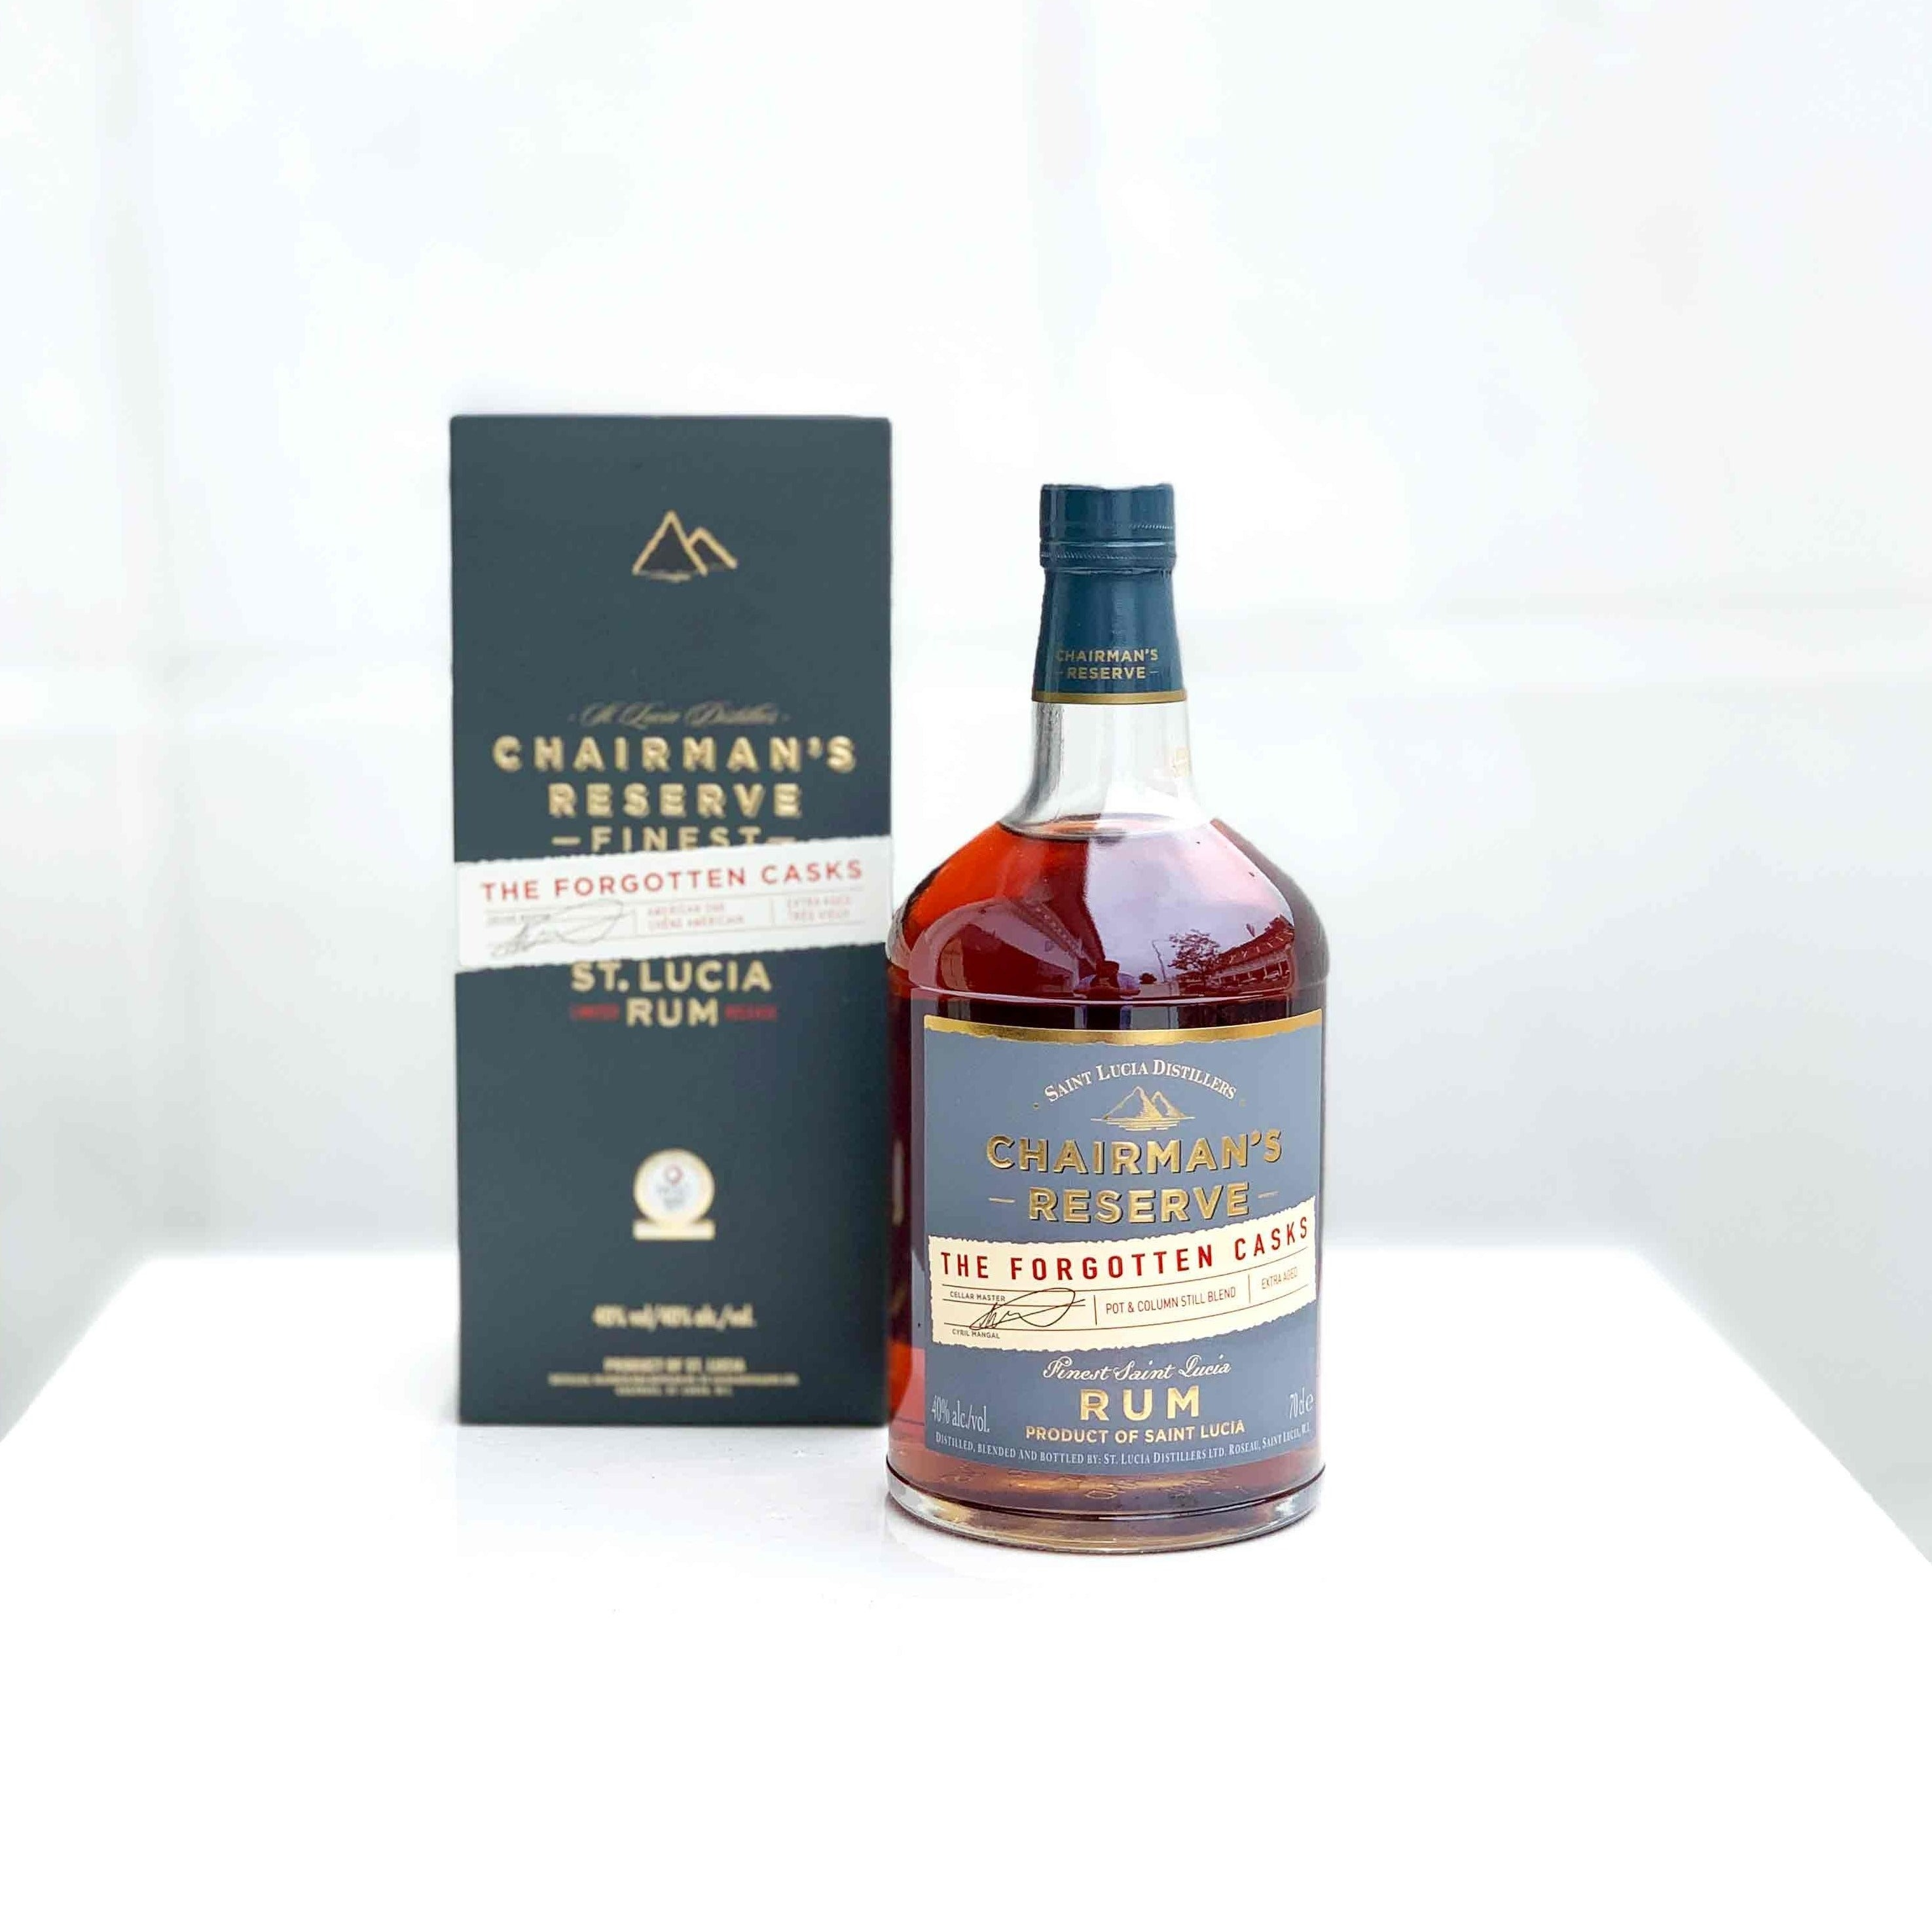 Chairman's Reserve The Forgotten Cask